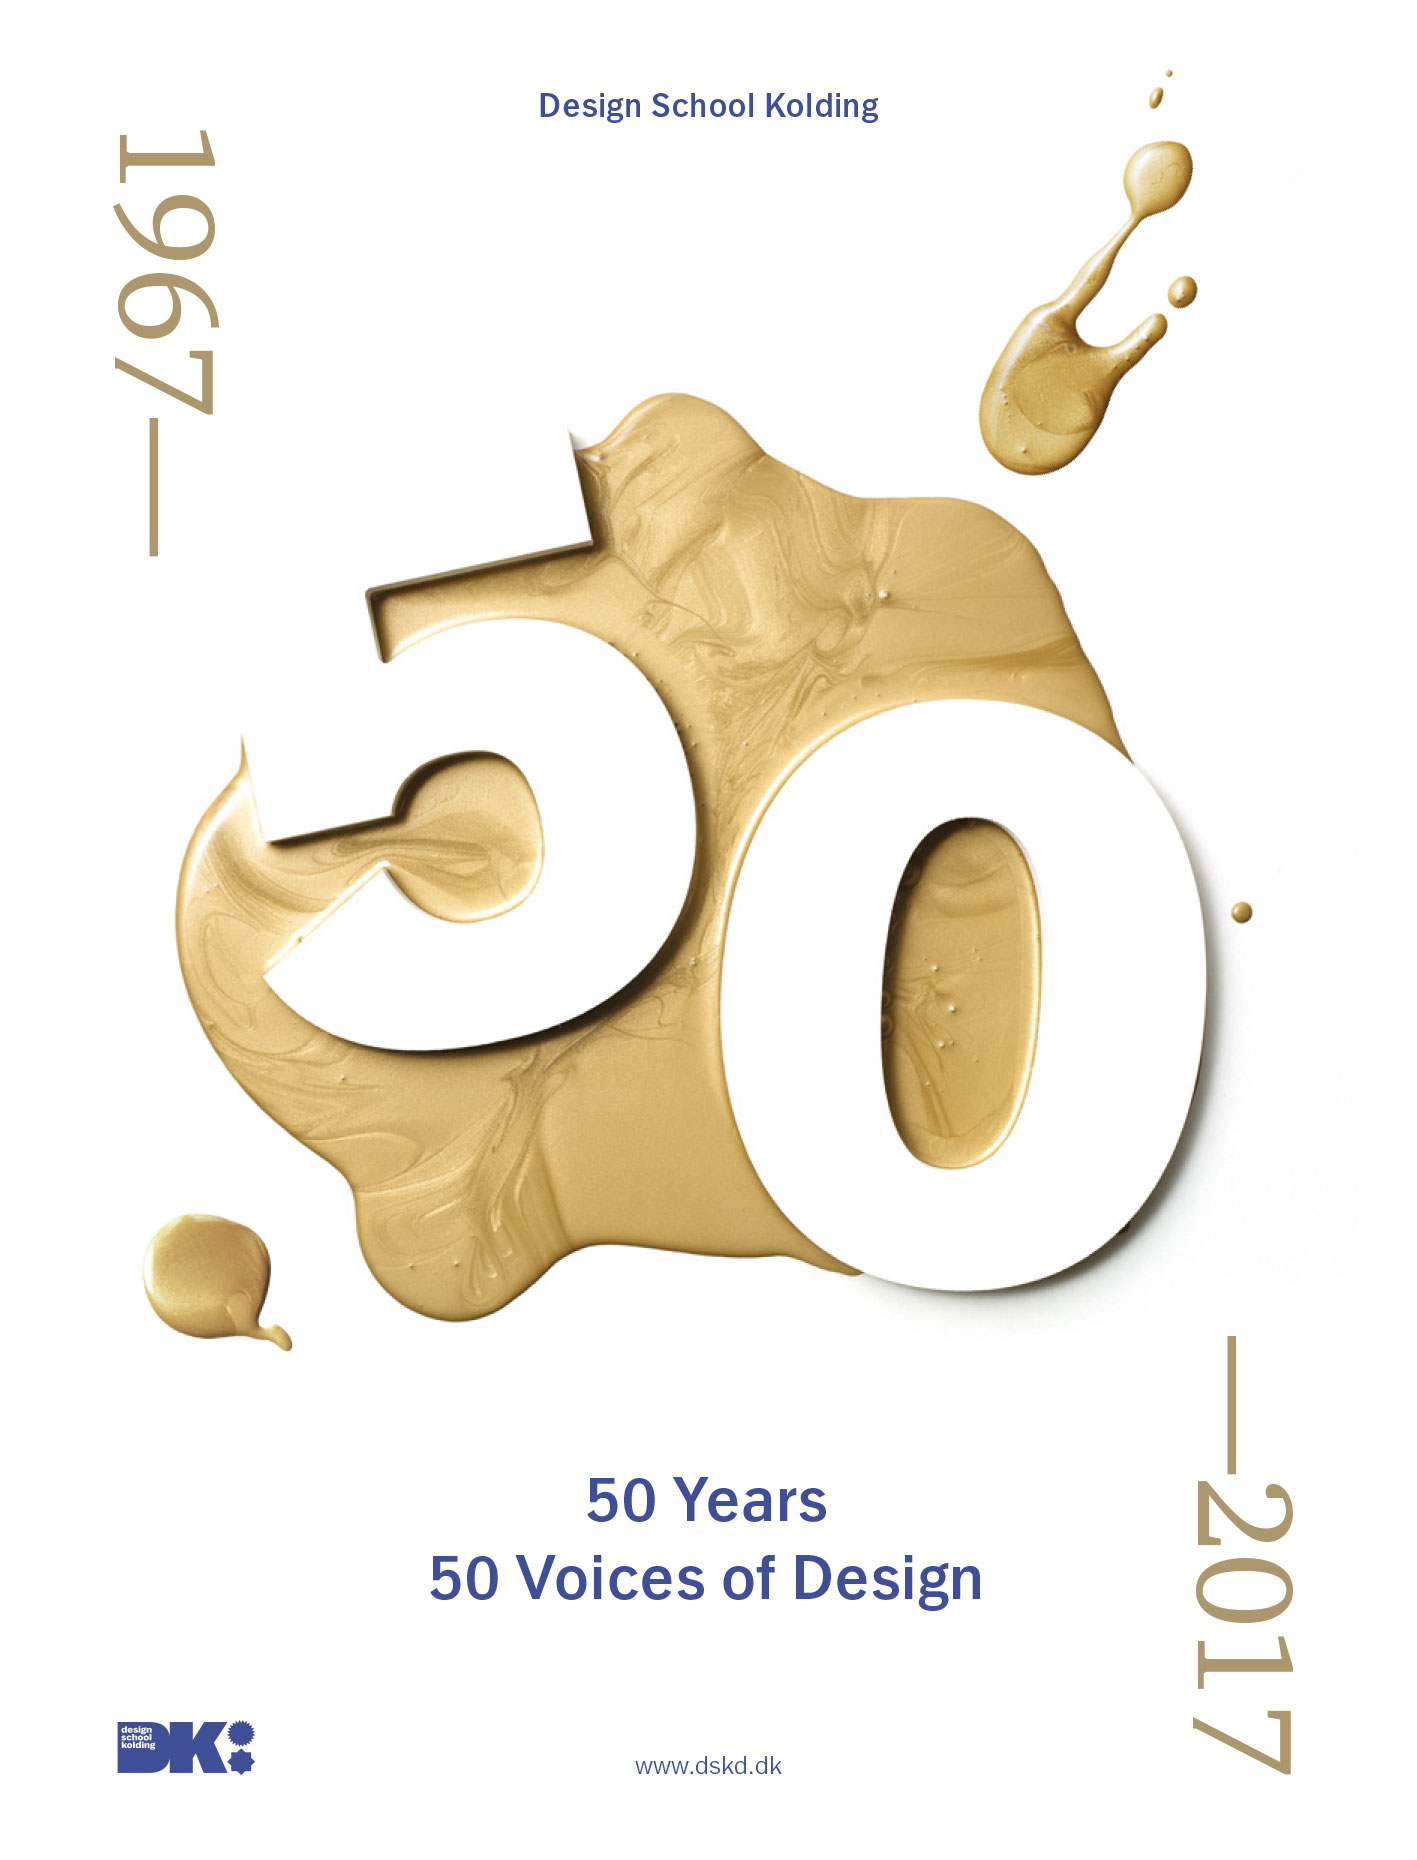 50 designers – educated at Design School Kolding over a period of 50 years. AUTHOR Design School Kolding YEAR OF PUBLICATION - 2017